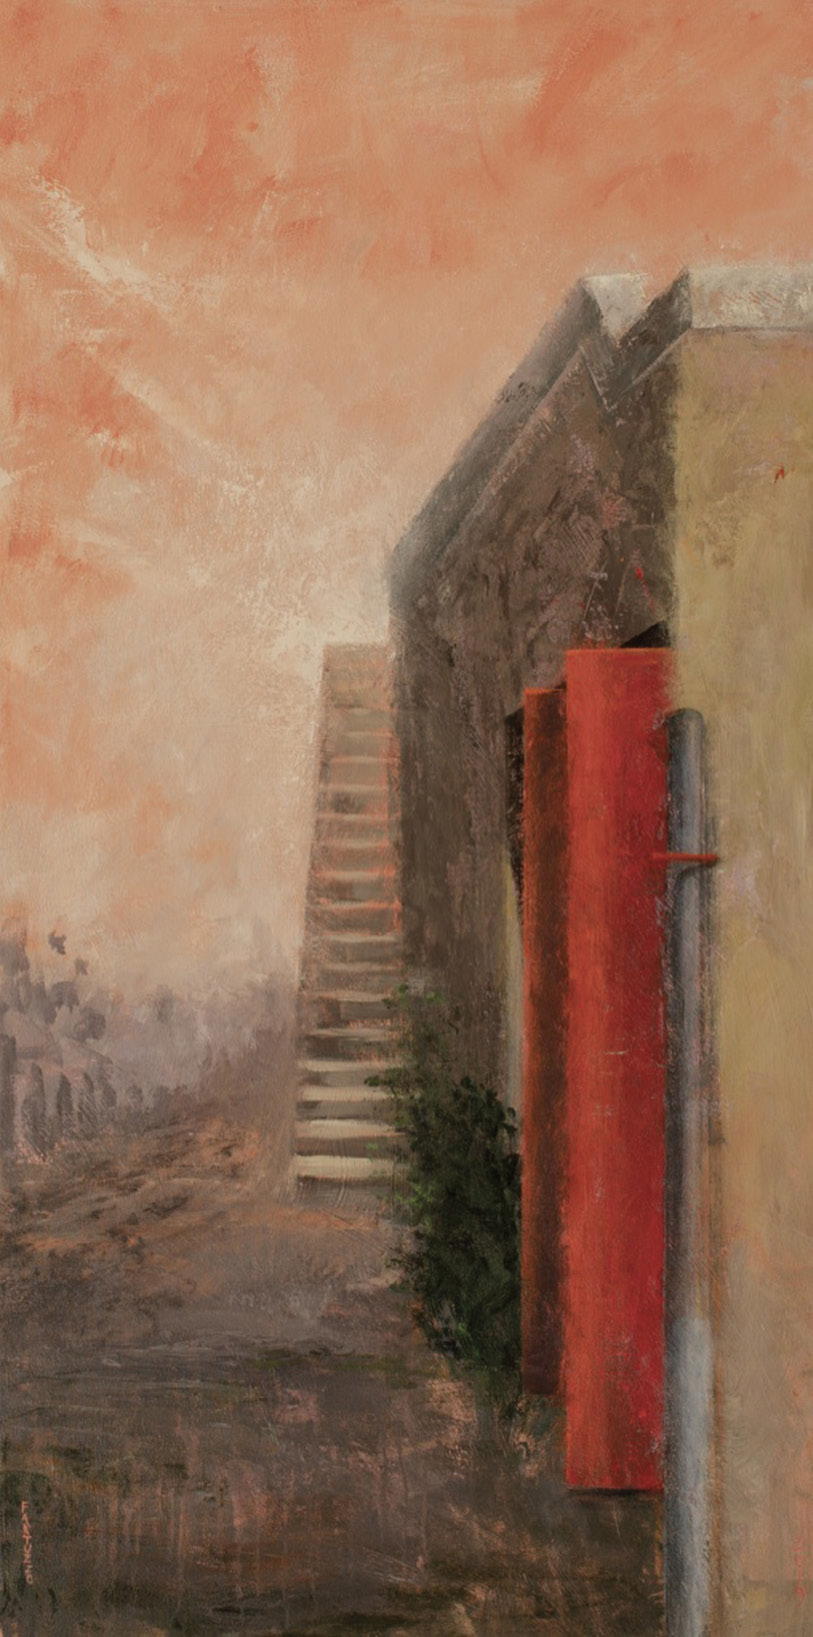 Ascension (acrylic on canvas, 48 x 28 inches, 2019)